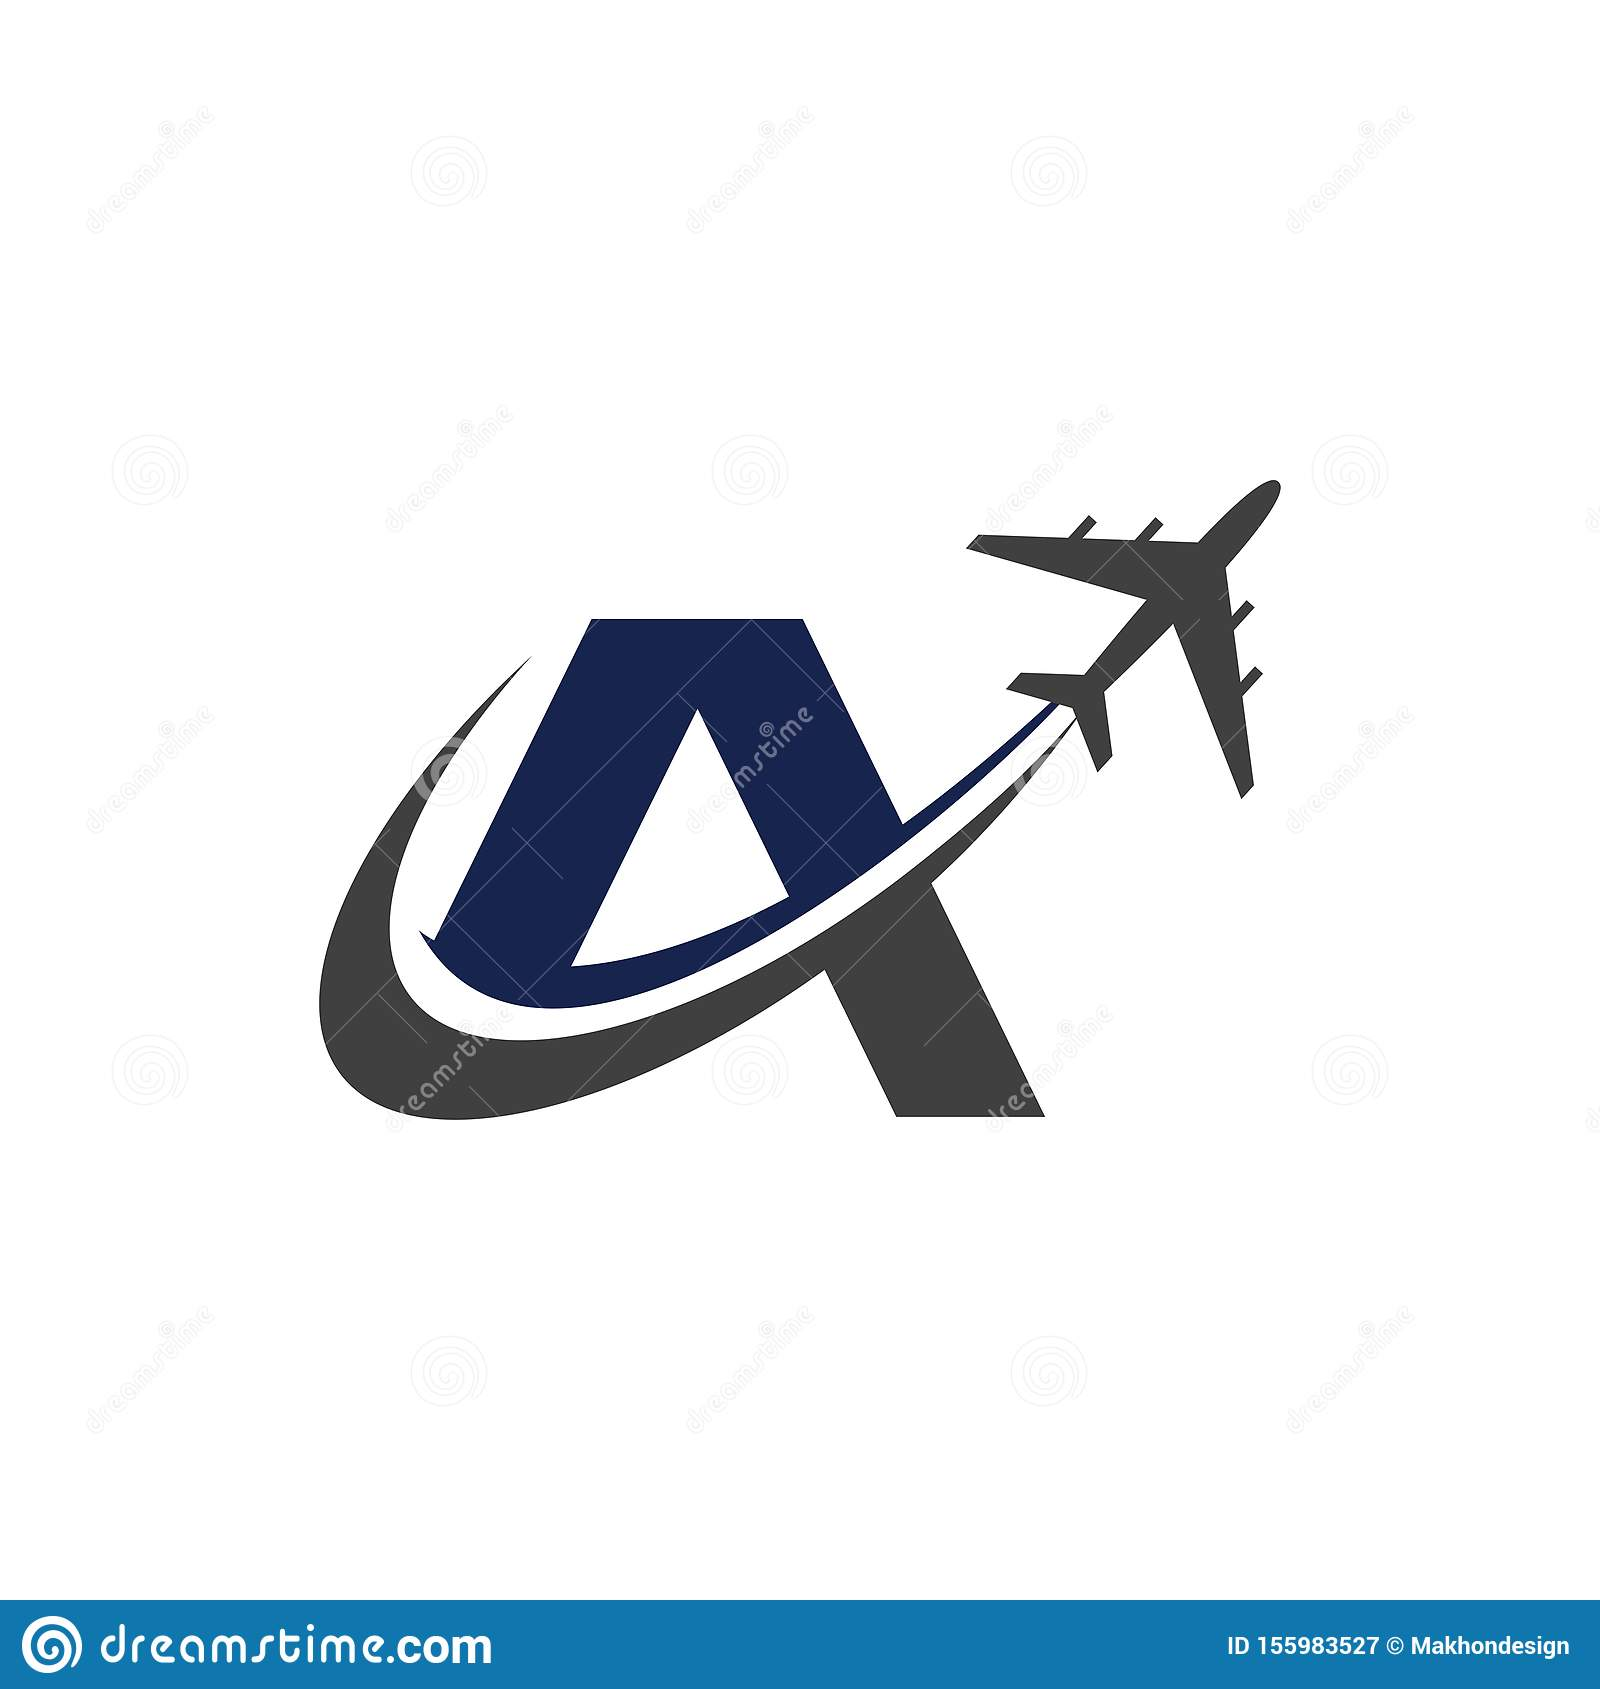 A Letter Logo With Airplane Air Airplane Minimalist Logo Design Stock Vector Illustration Of Object Shape 155983527